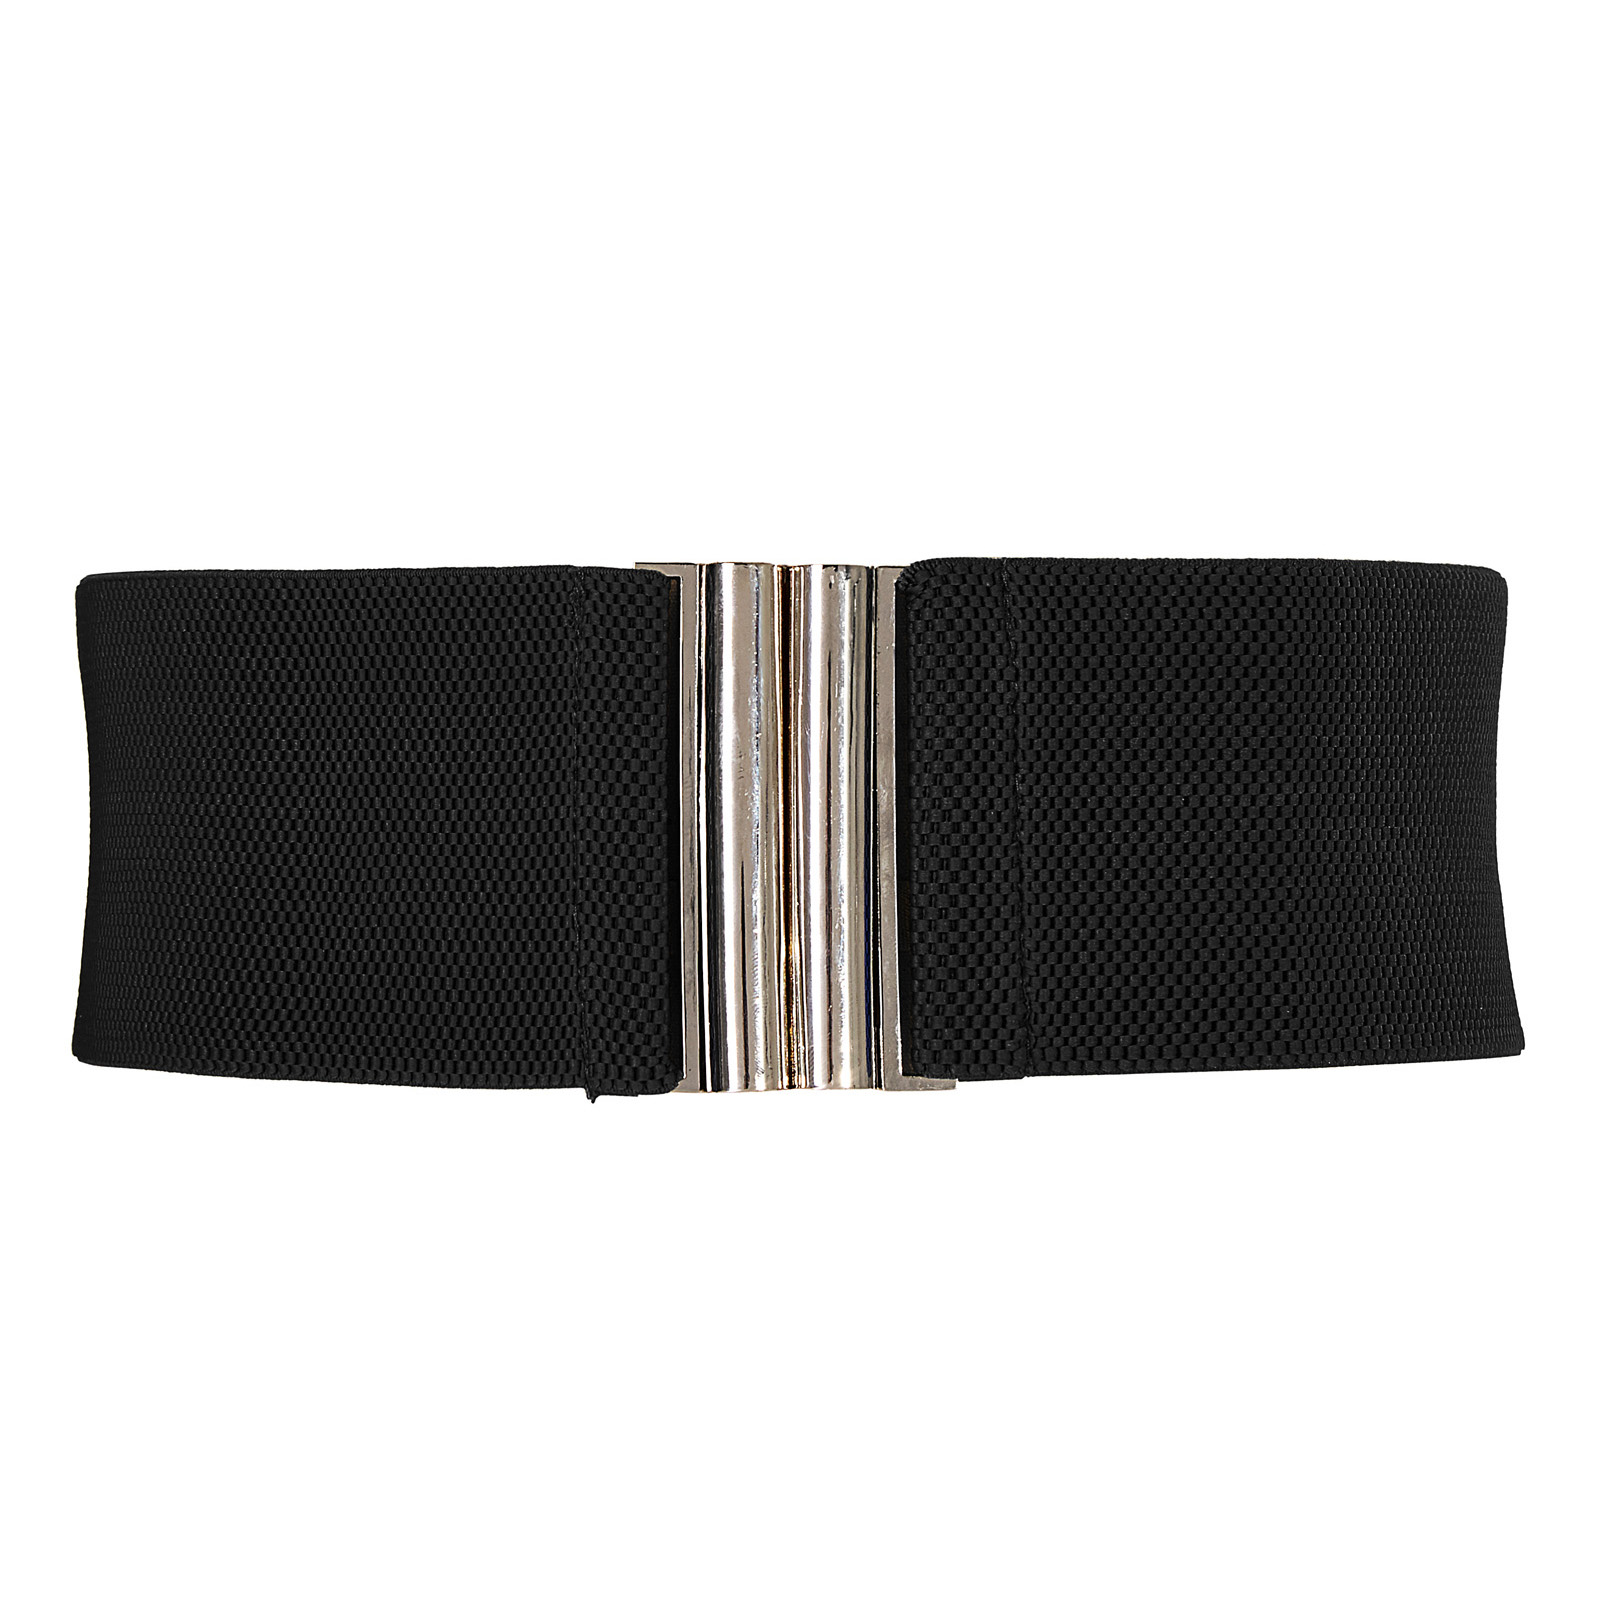 Black white retro vintage Ladies Girls Fashion Wide   belts   for party dress Metal Hook Stretchy Elastic Waist   Belt   Waistband